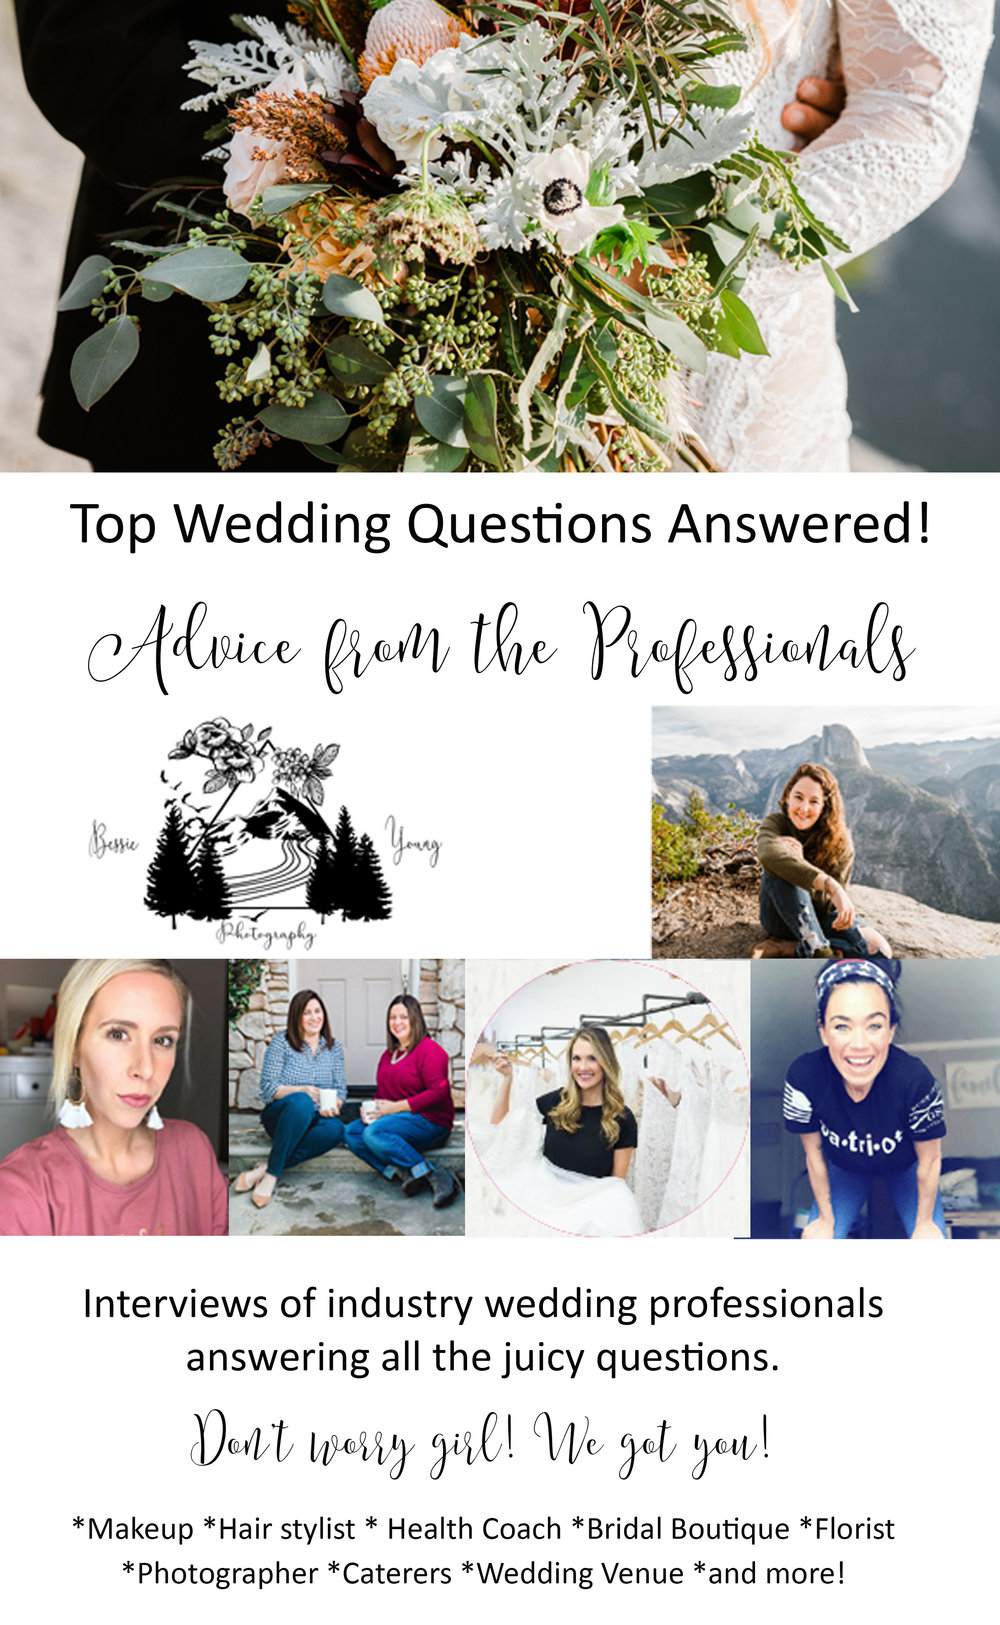 Advice from a PRO - All your wedding questions answered!